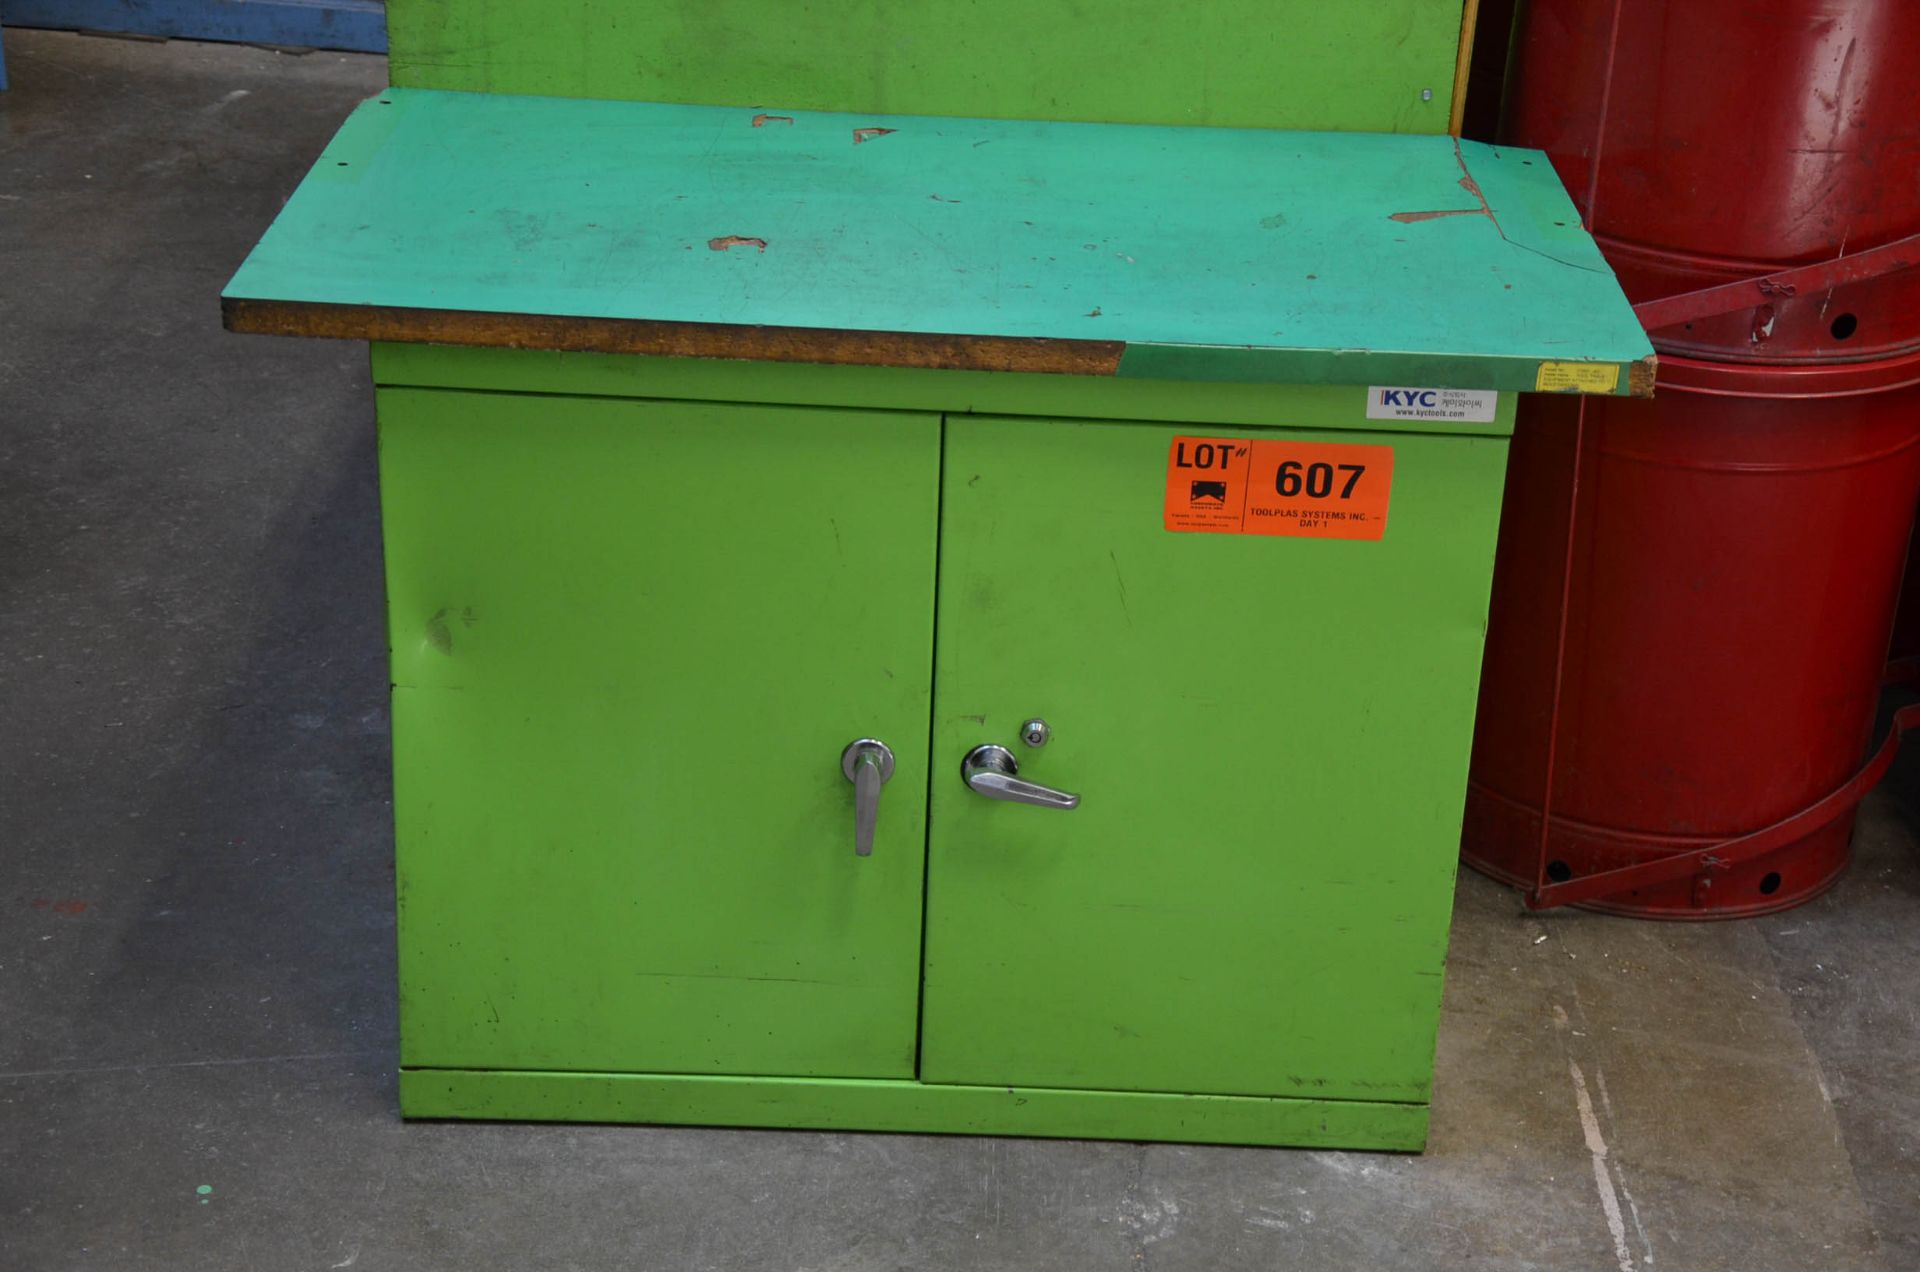 LOT/ CABINET AND CONTENTS - SPARE PARTS AND COMPONENTS